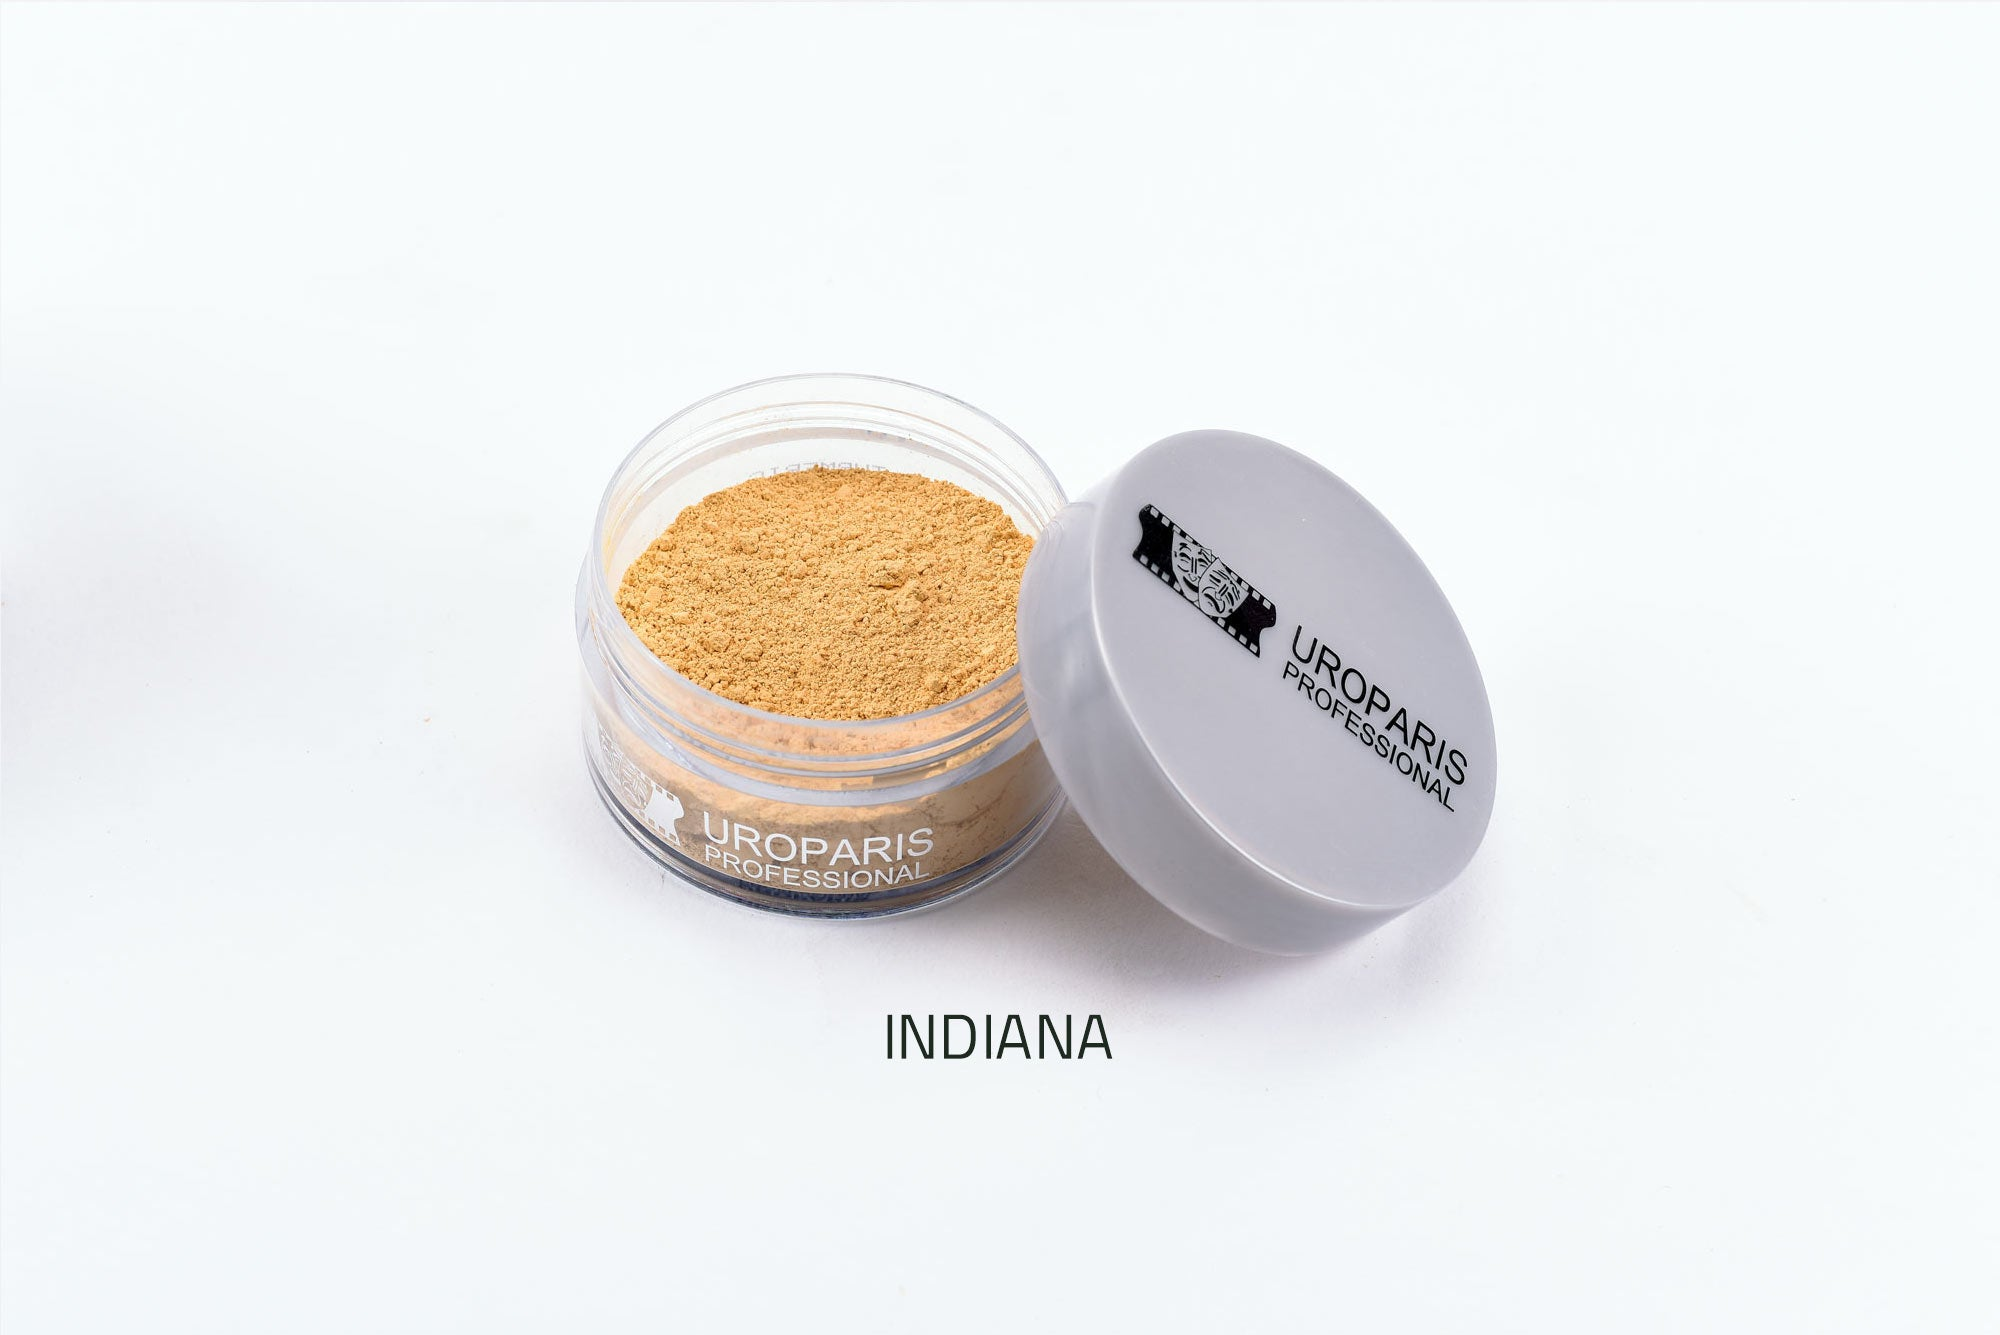 Uroparis Translucent Powder